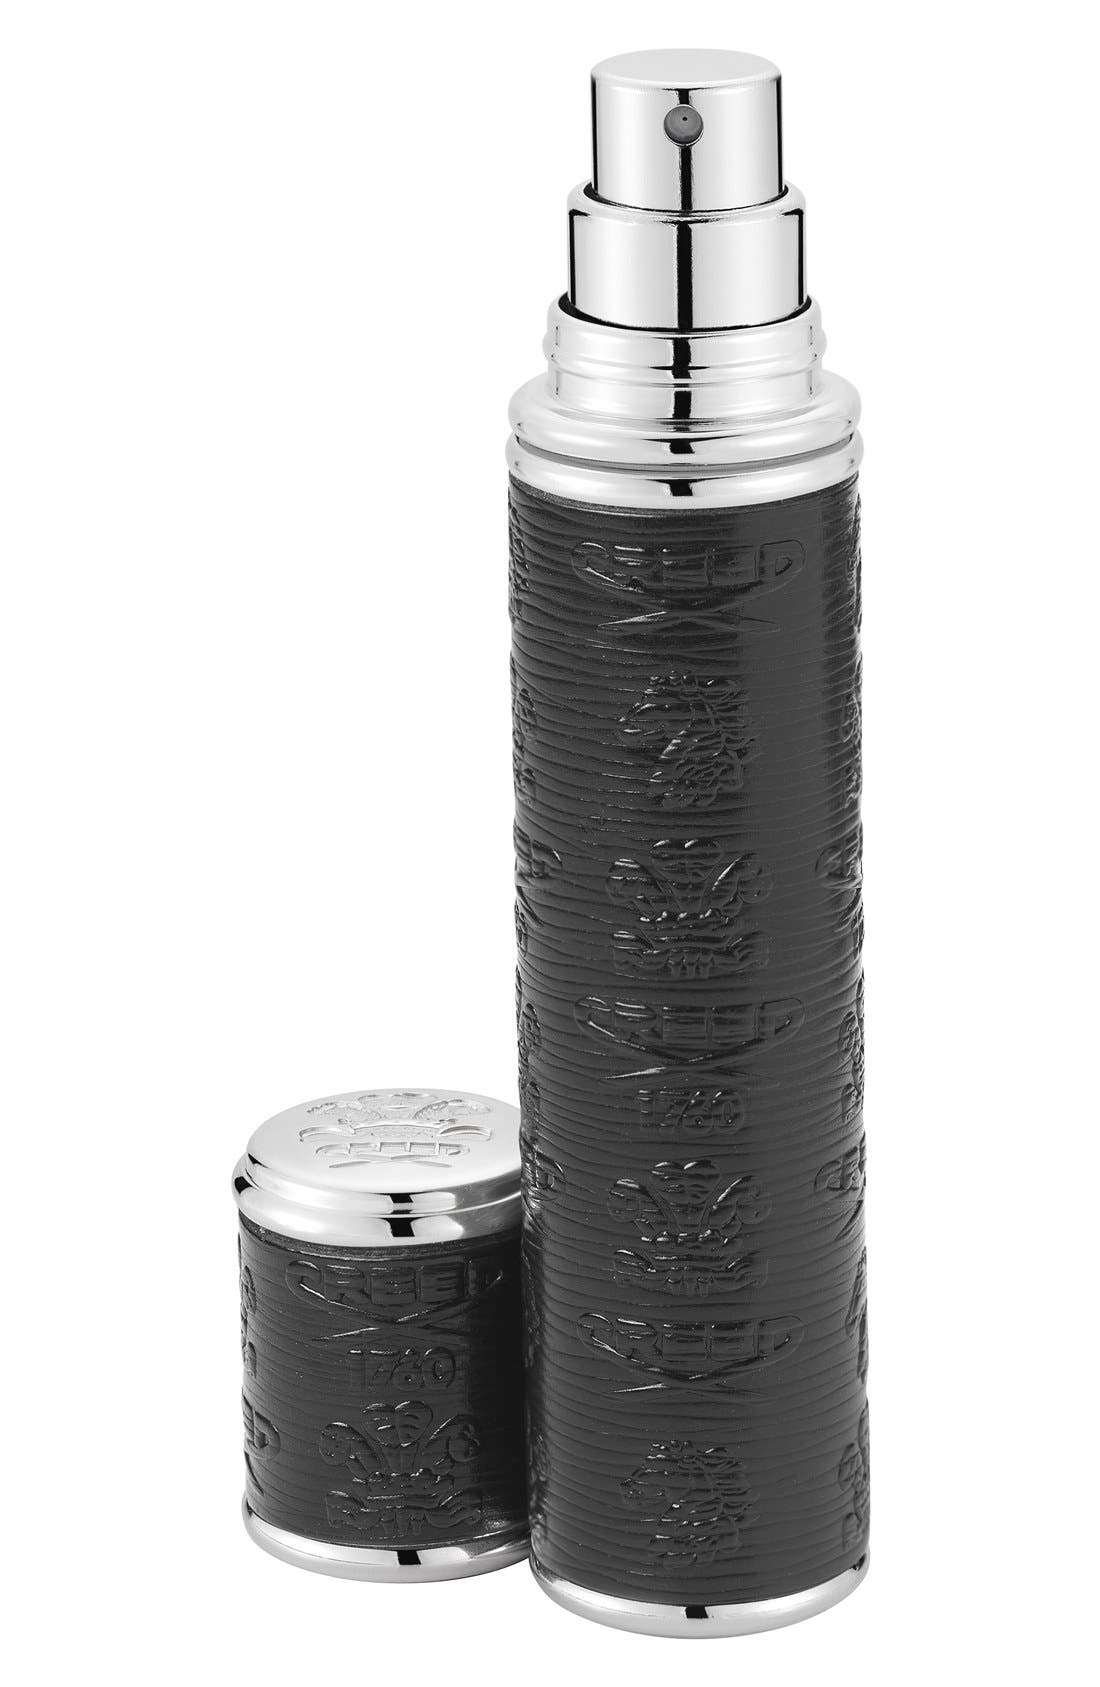 Black Leather with Silver Trim Pocket Atomizer,                         Main,                         color, 000